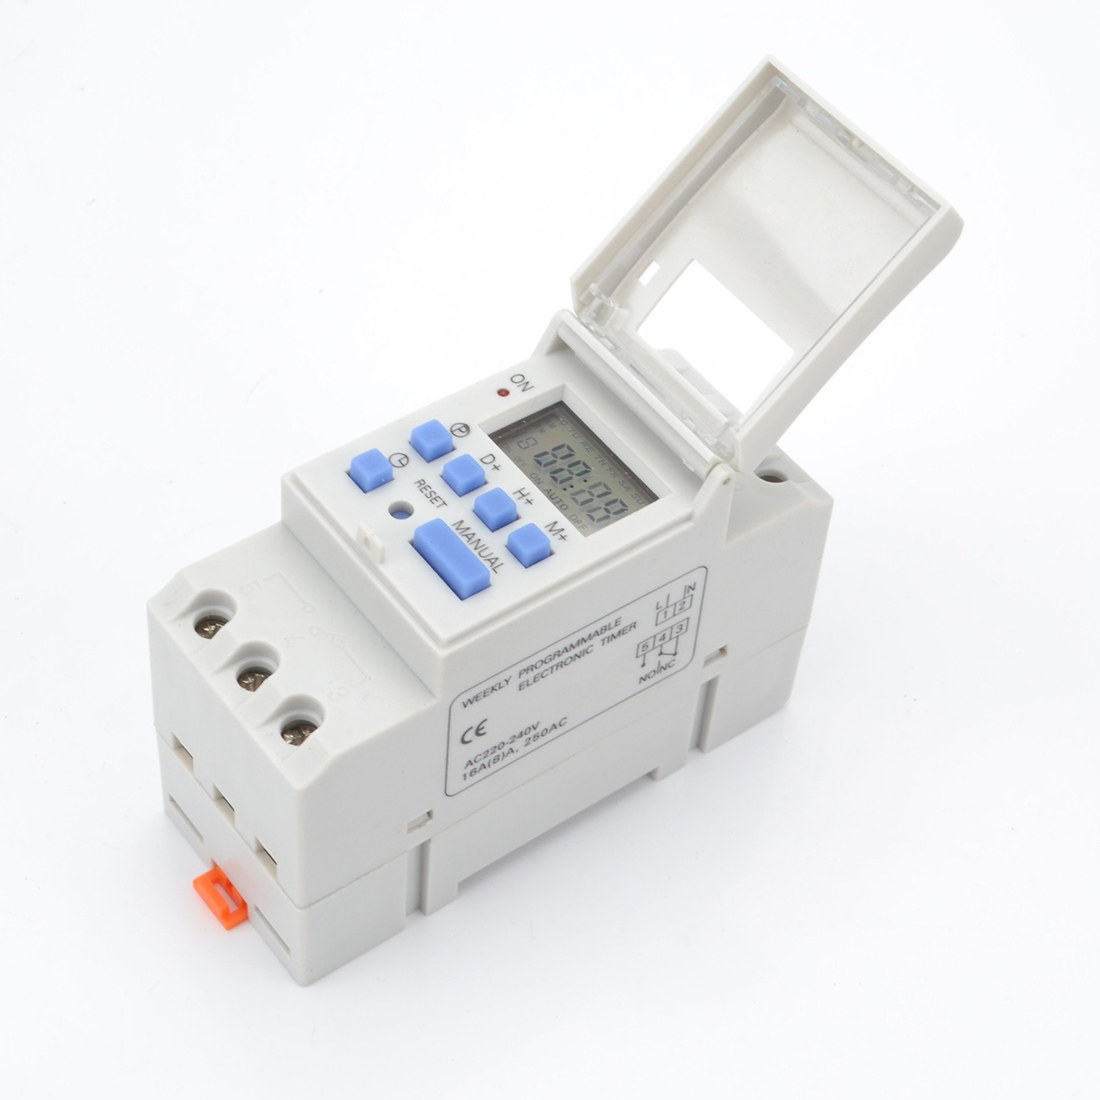 7 Days Programmable Digital Timer Switch Relay Control 220V 230V 6A 10A 16A 20A 25A 30A Electronic Weekly idpna vigi dpnl rcbo 6a 32a 25a 20a 16a 10a 18mm 230v 30ma residual current circuit breaker leakage protection mcb a9d91620